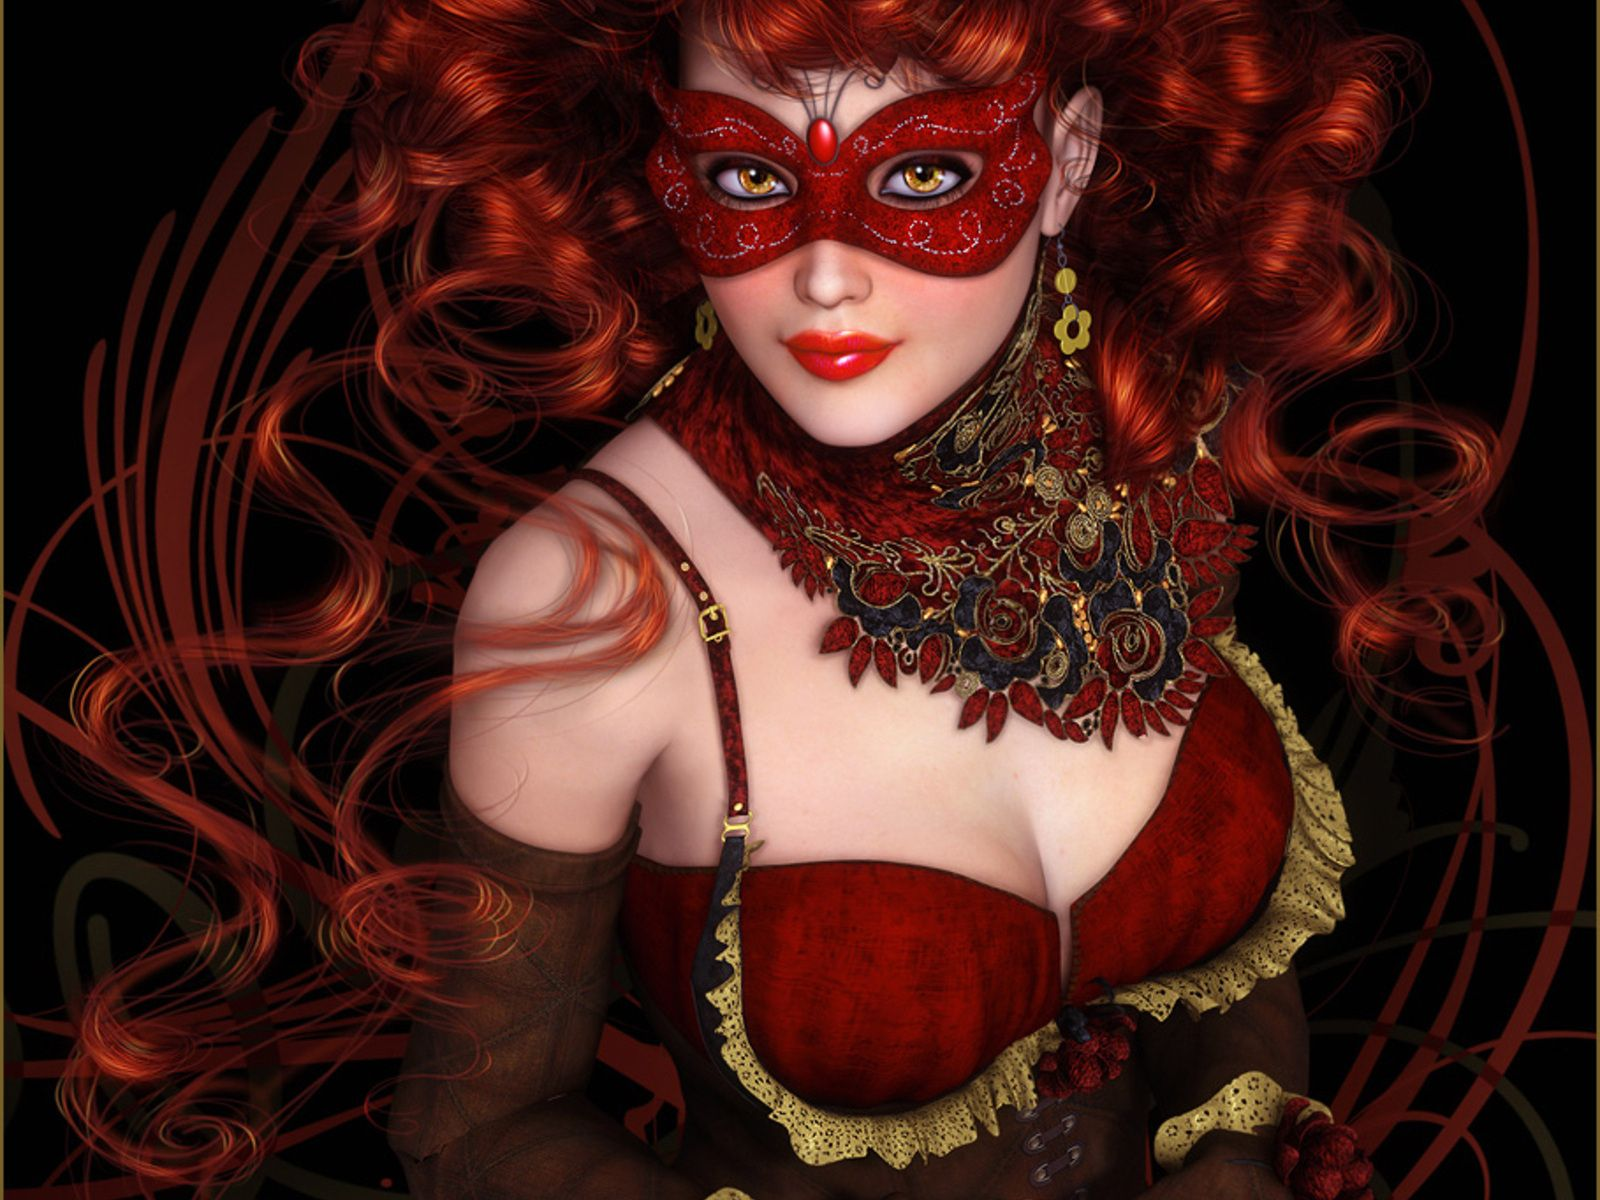 Fantasy Women in Red | Fantasy - Women Wallpaper | Everything Red ...